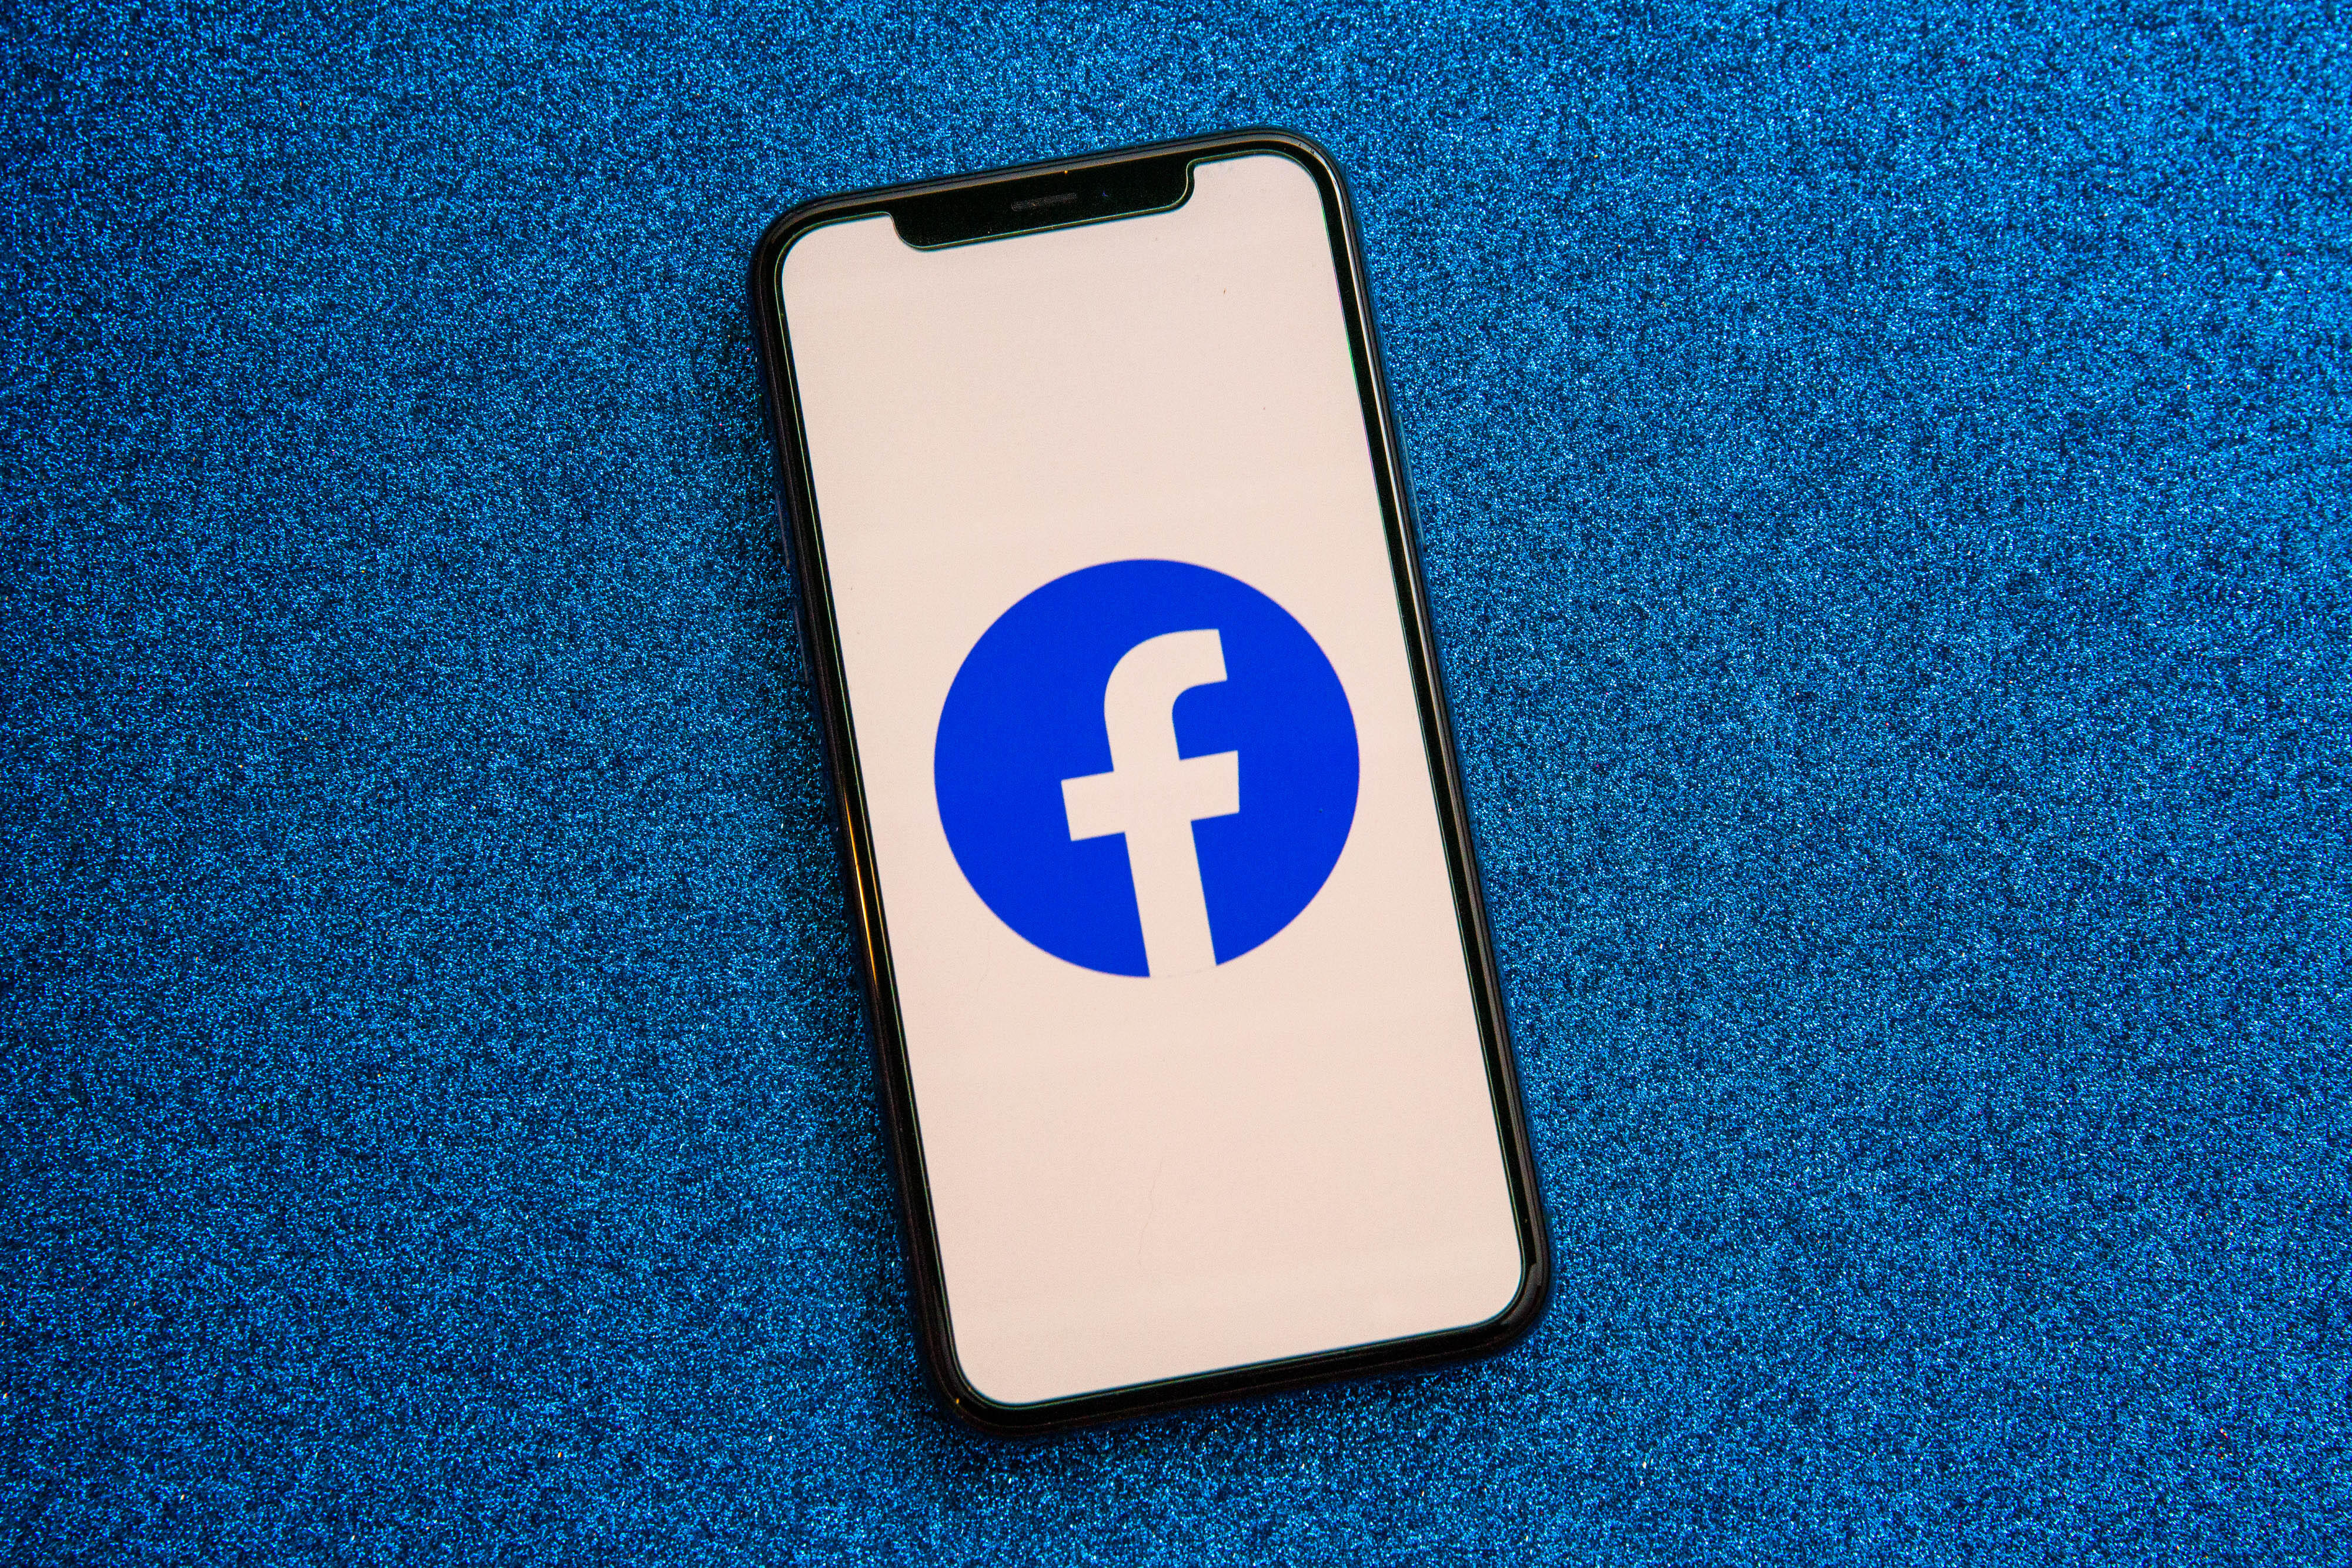 Facebook takes on Clubhouse, Twitter with plans for 'social audio' tools     - CNET